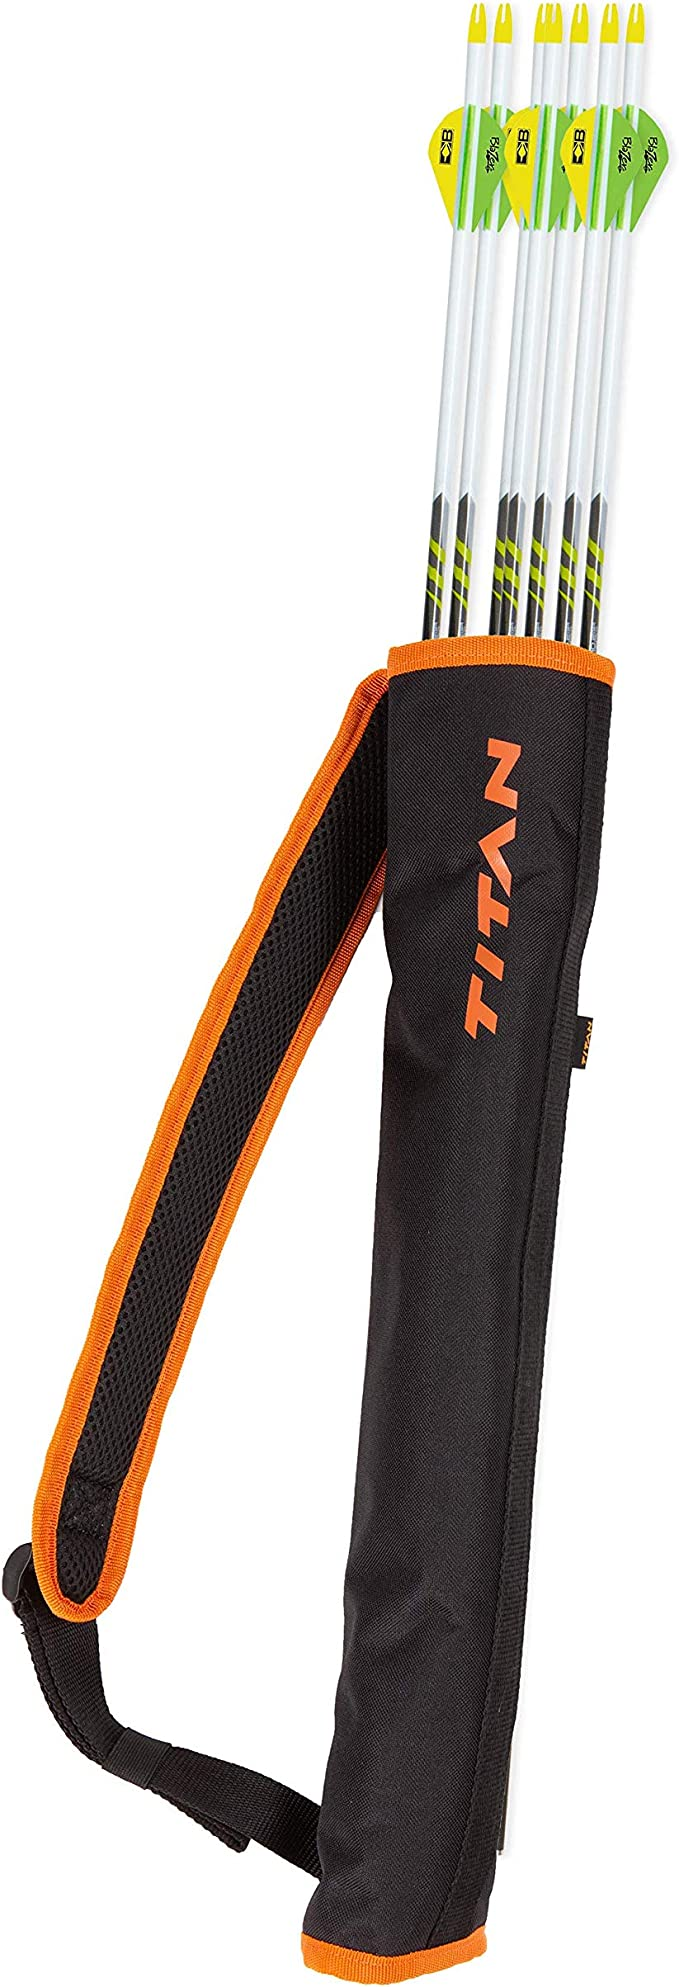 best quivers: Allen Company Youth Archery Back Quiver Arrow Holder